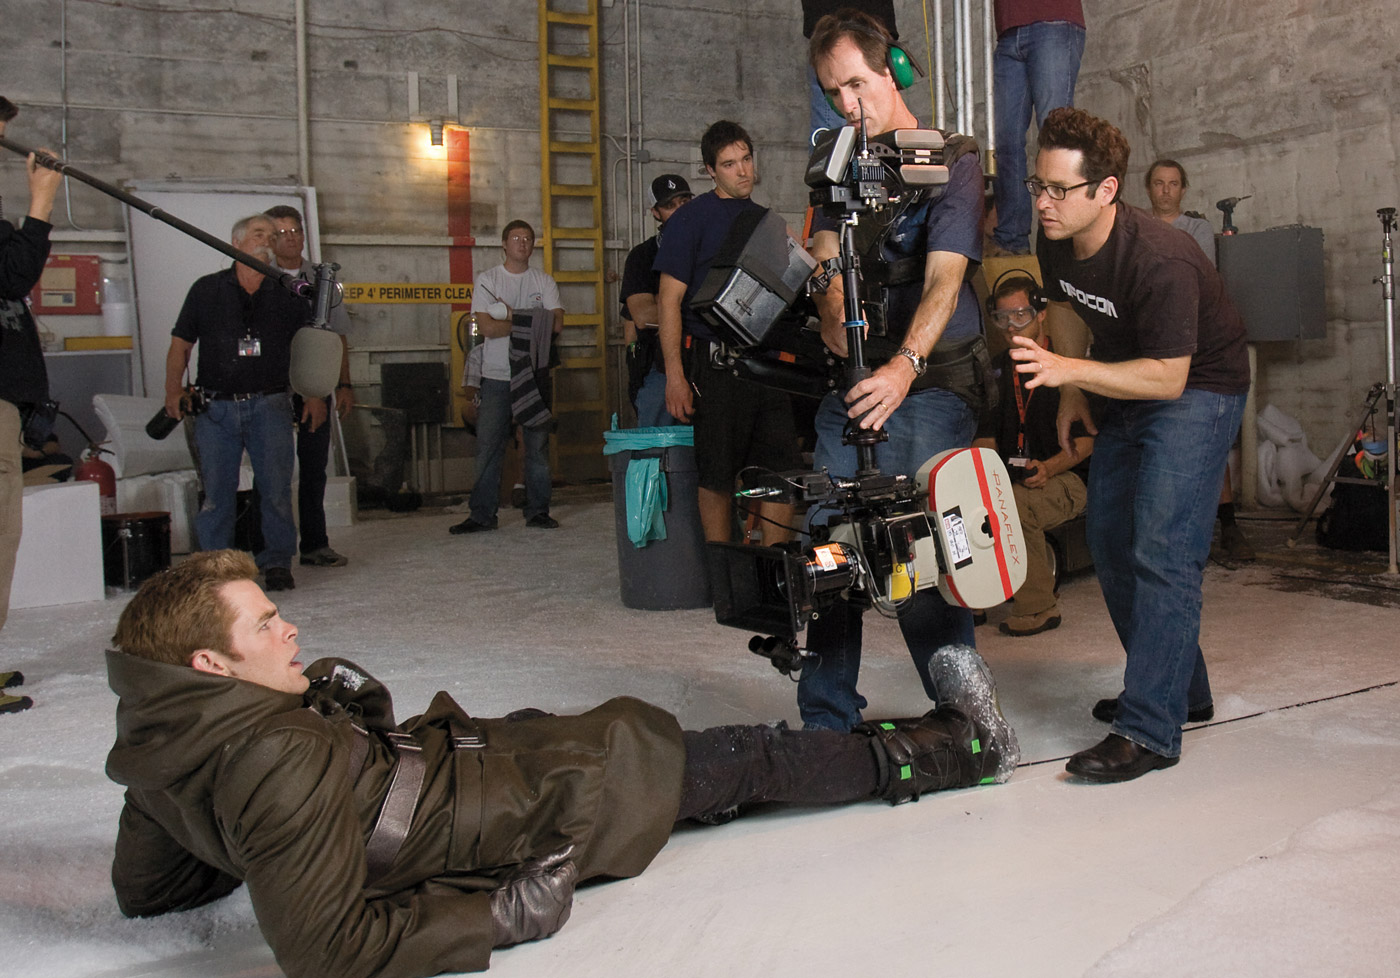 Abrams sets up a Steadicam shot on actor Chris Pine.